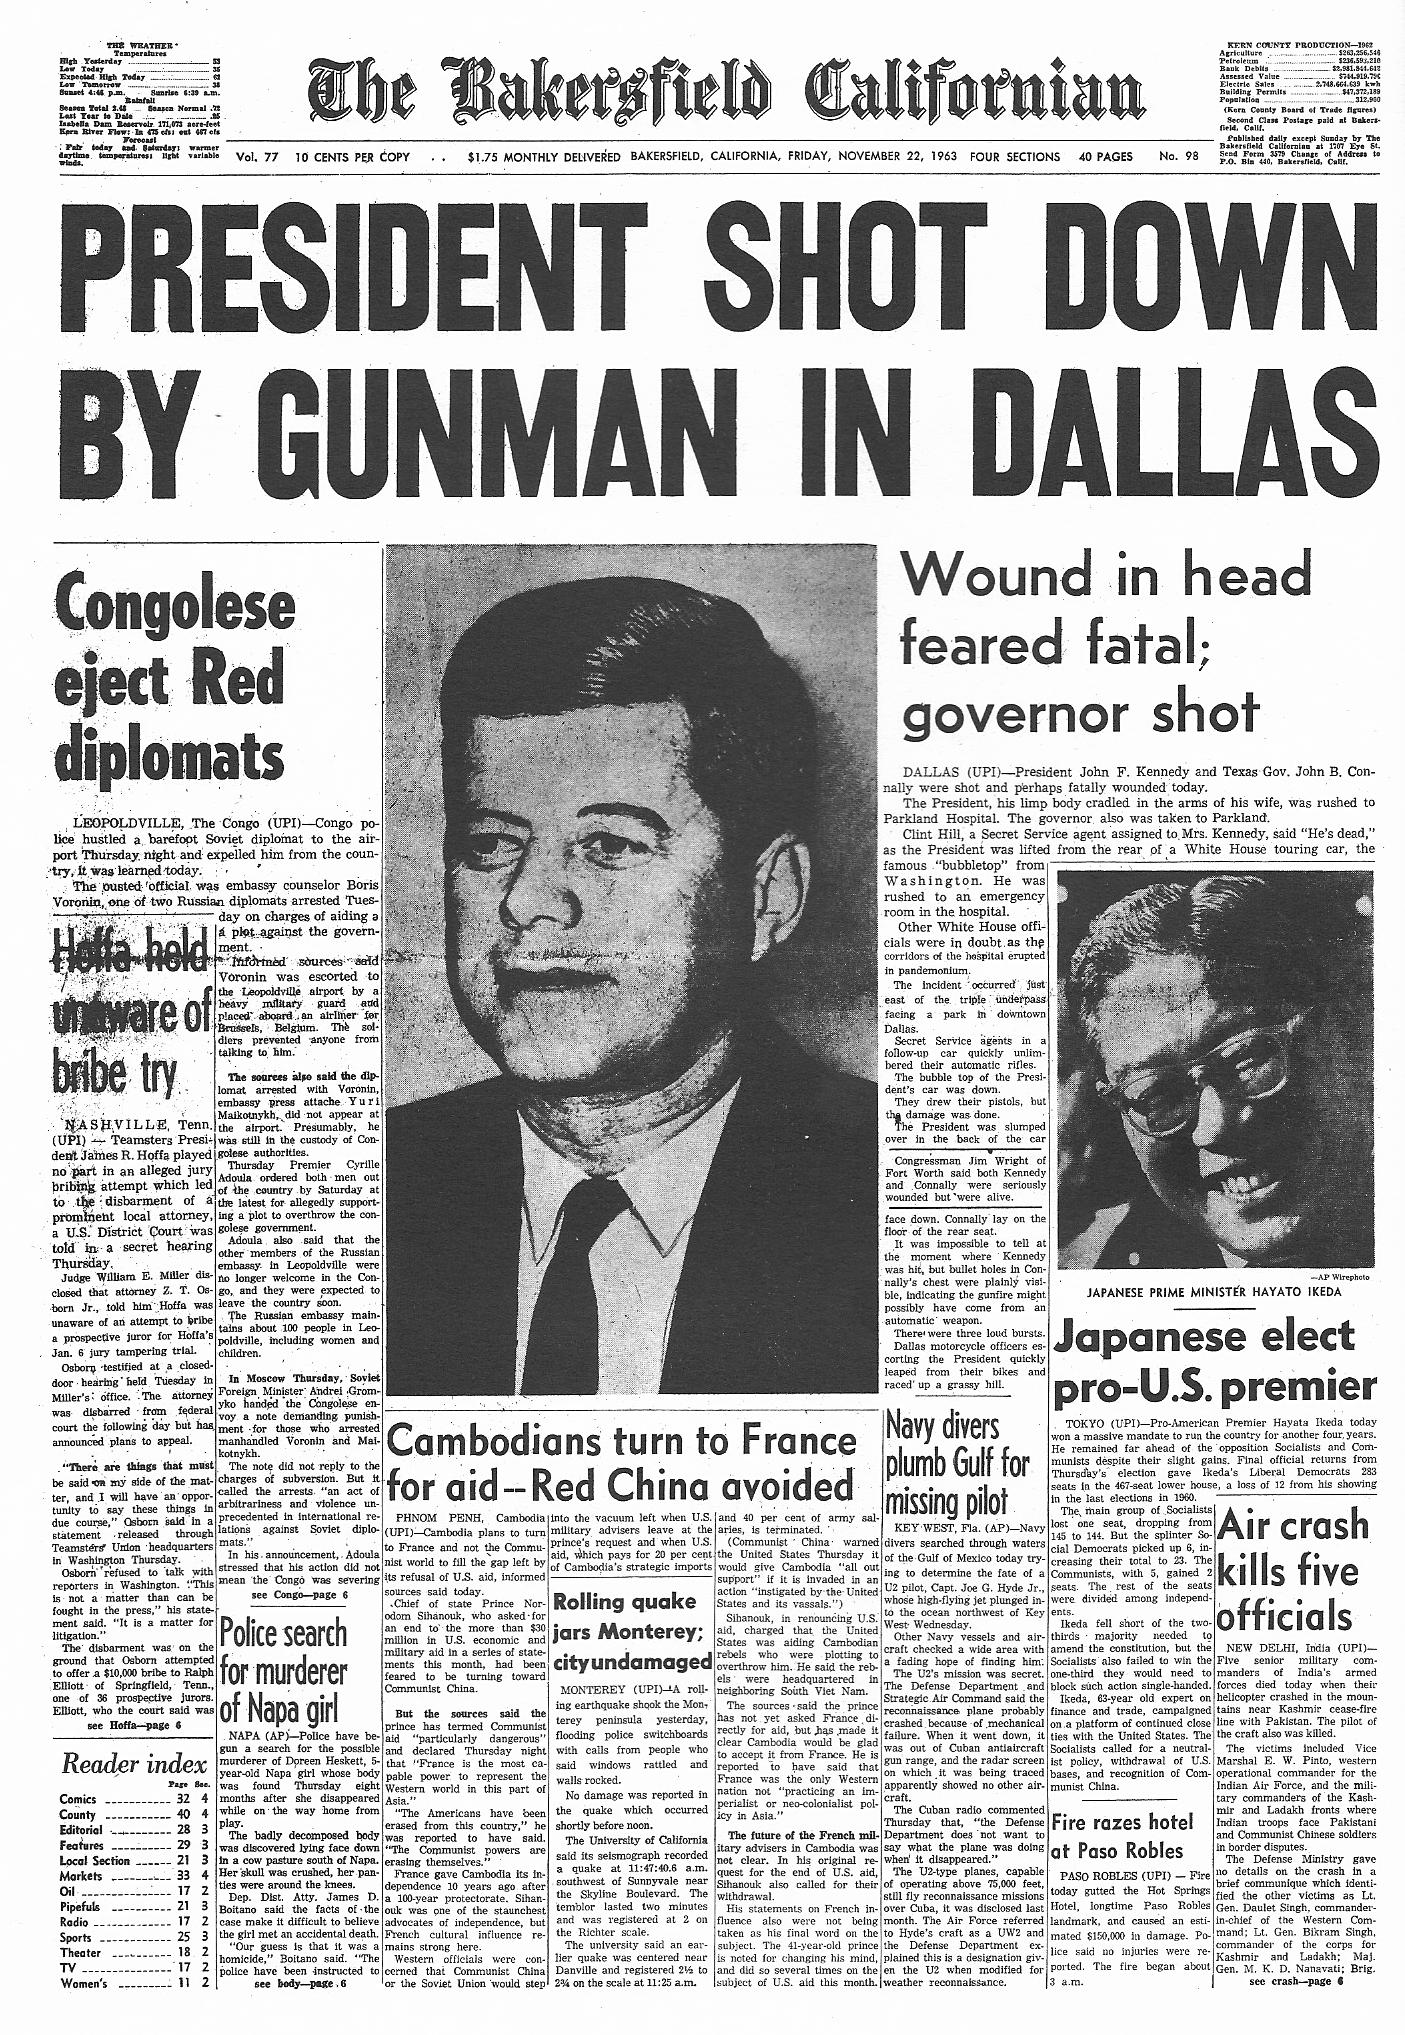 an analysis of the death of president john f kennedy Fifty years ago, on nov 22, 1963, president john f kennedy was assassinated  in dallas, texas the news sent shockwaves across the nation and around the.